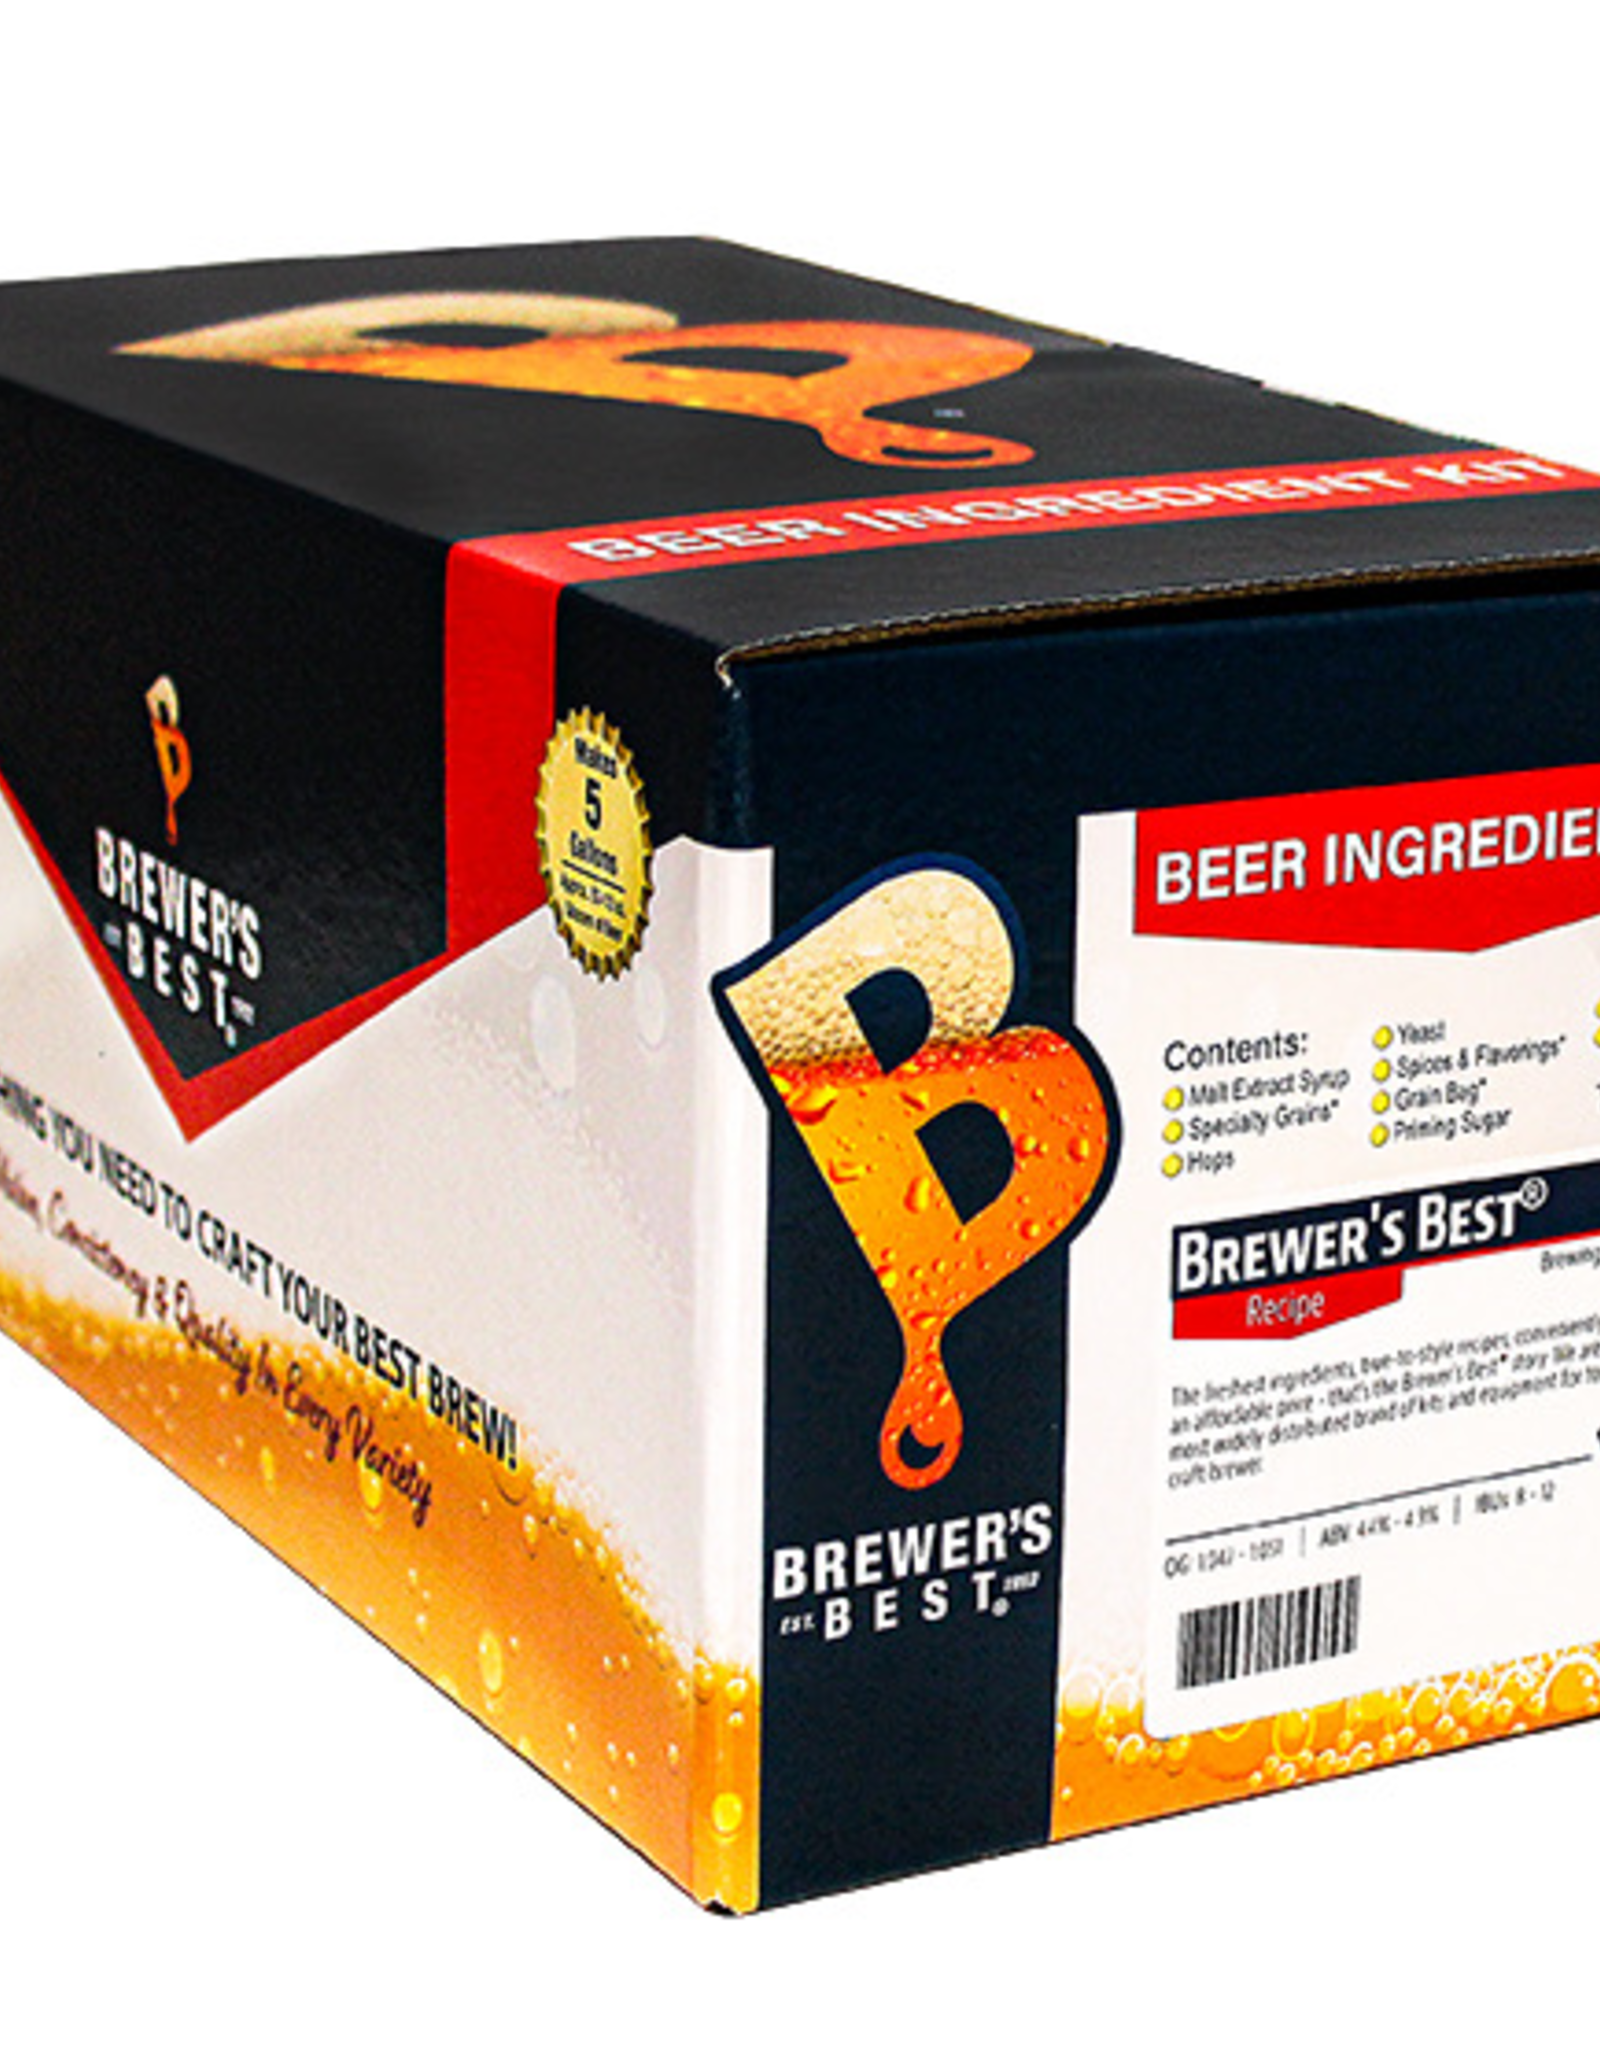 BREWERS BEST A medium-bodied brew with malty character surrounded by a nutty aroma. Maris Otter is the perfect complement to the UK hops.